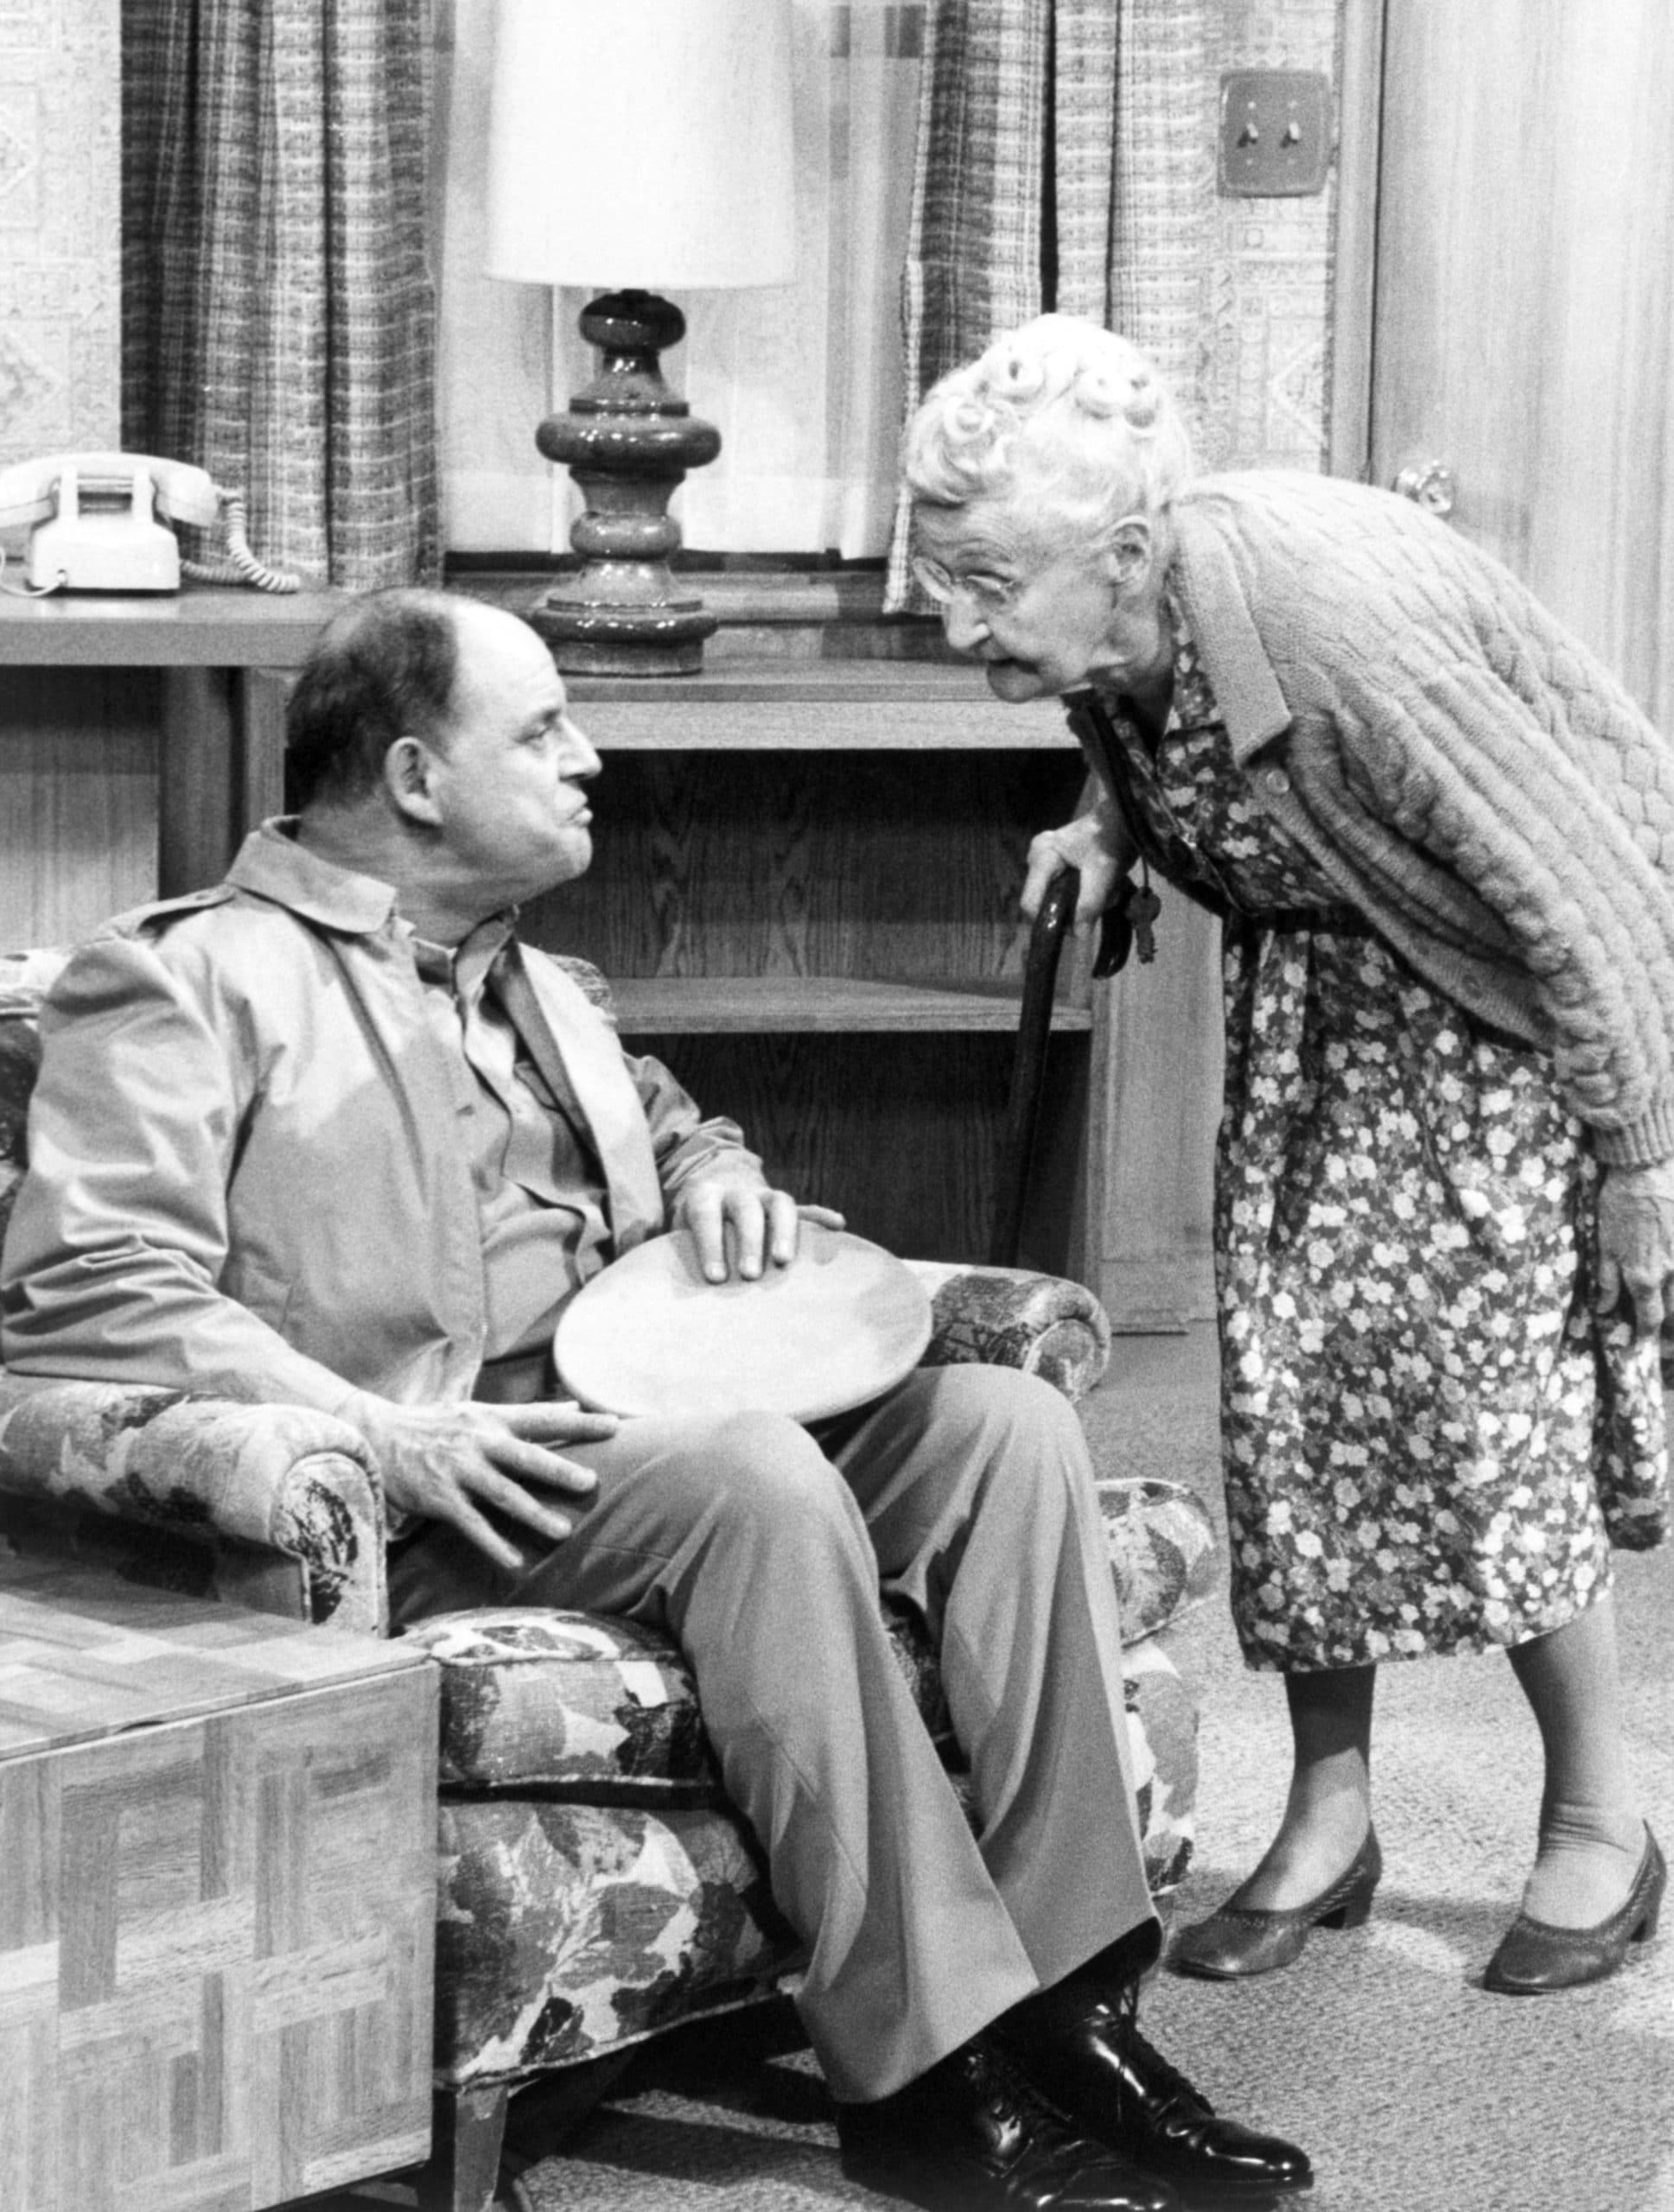 C.P.O. SHARKEY, from left: Don Rickles, Merie Earle in 'Sharkey Finds Peace and Quiet' (Season 1, Episode 11, aired March 2, 1977), 1976-78